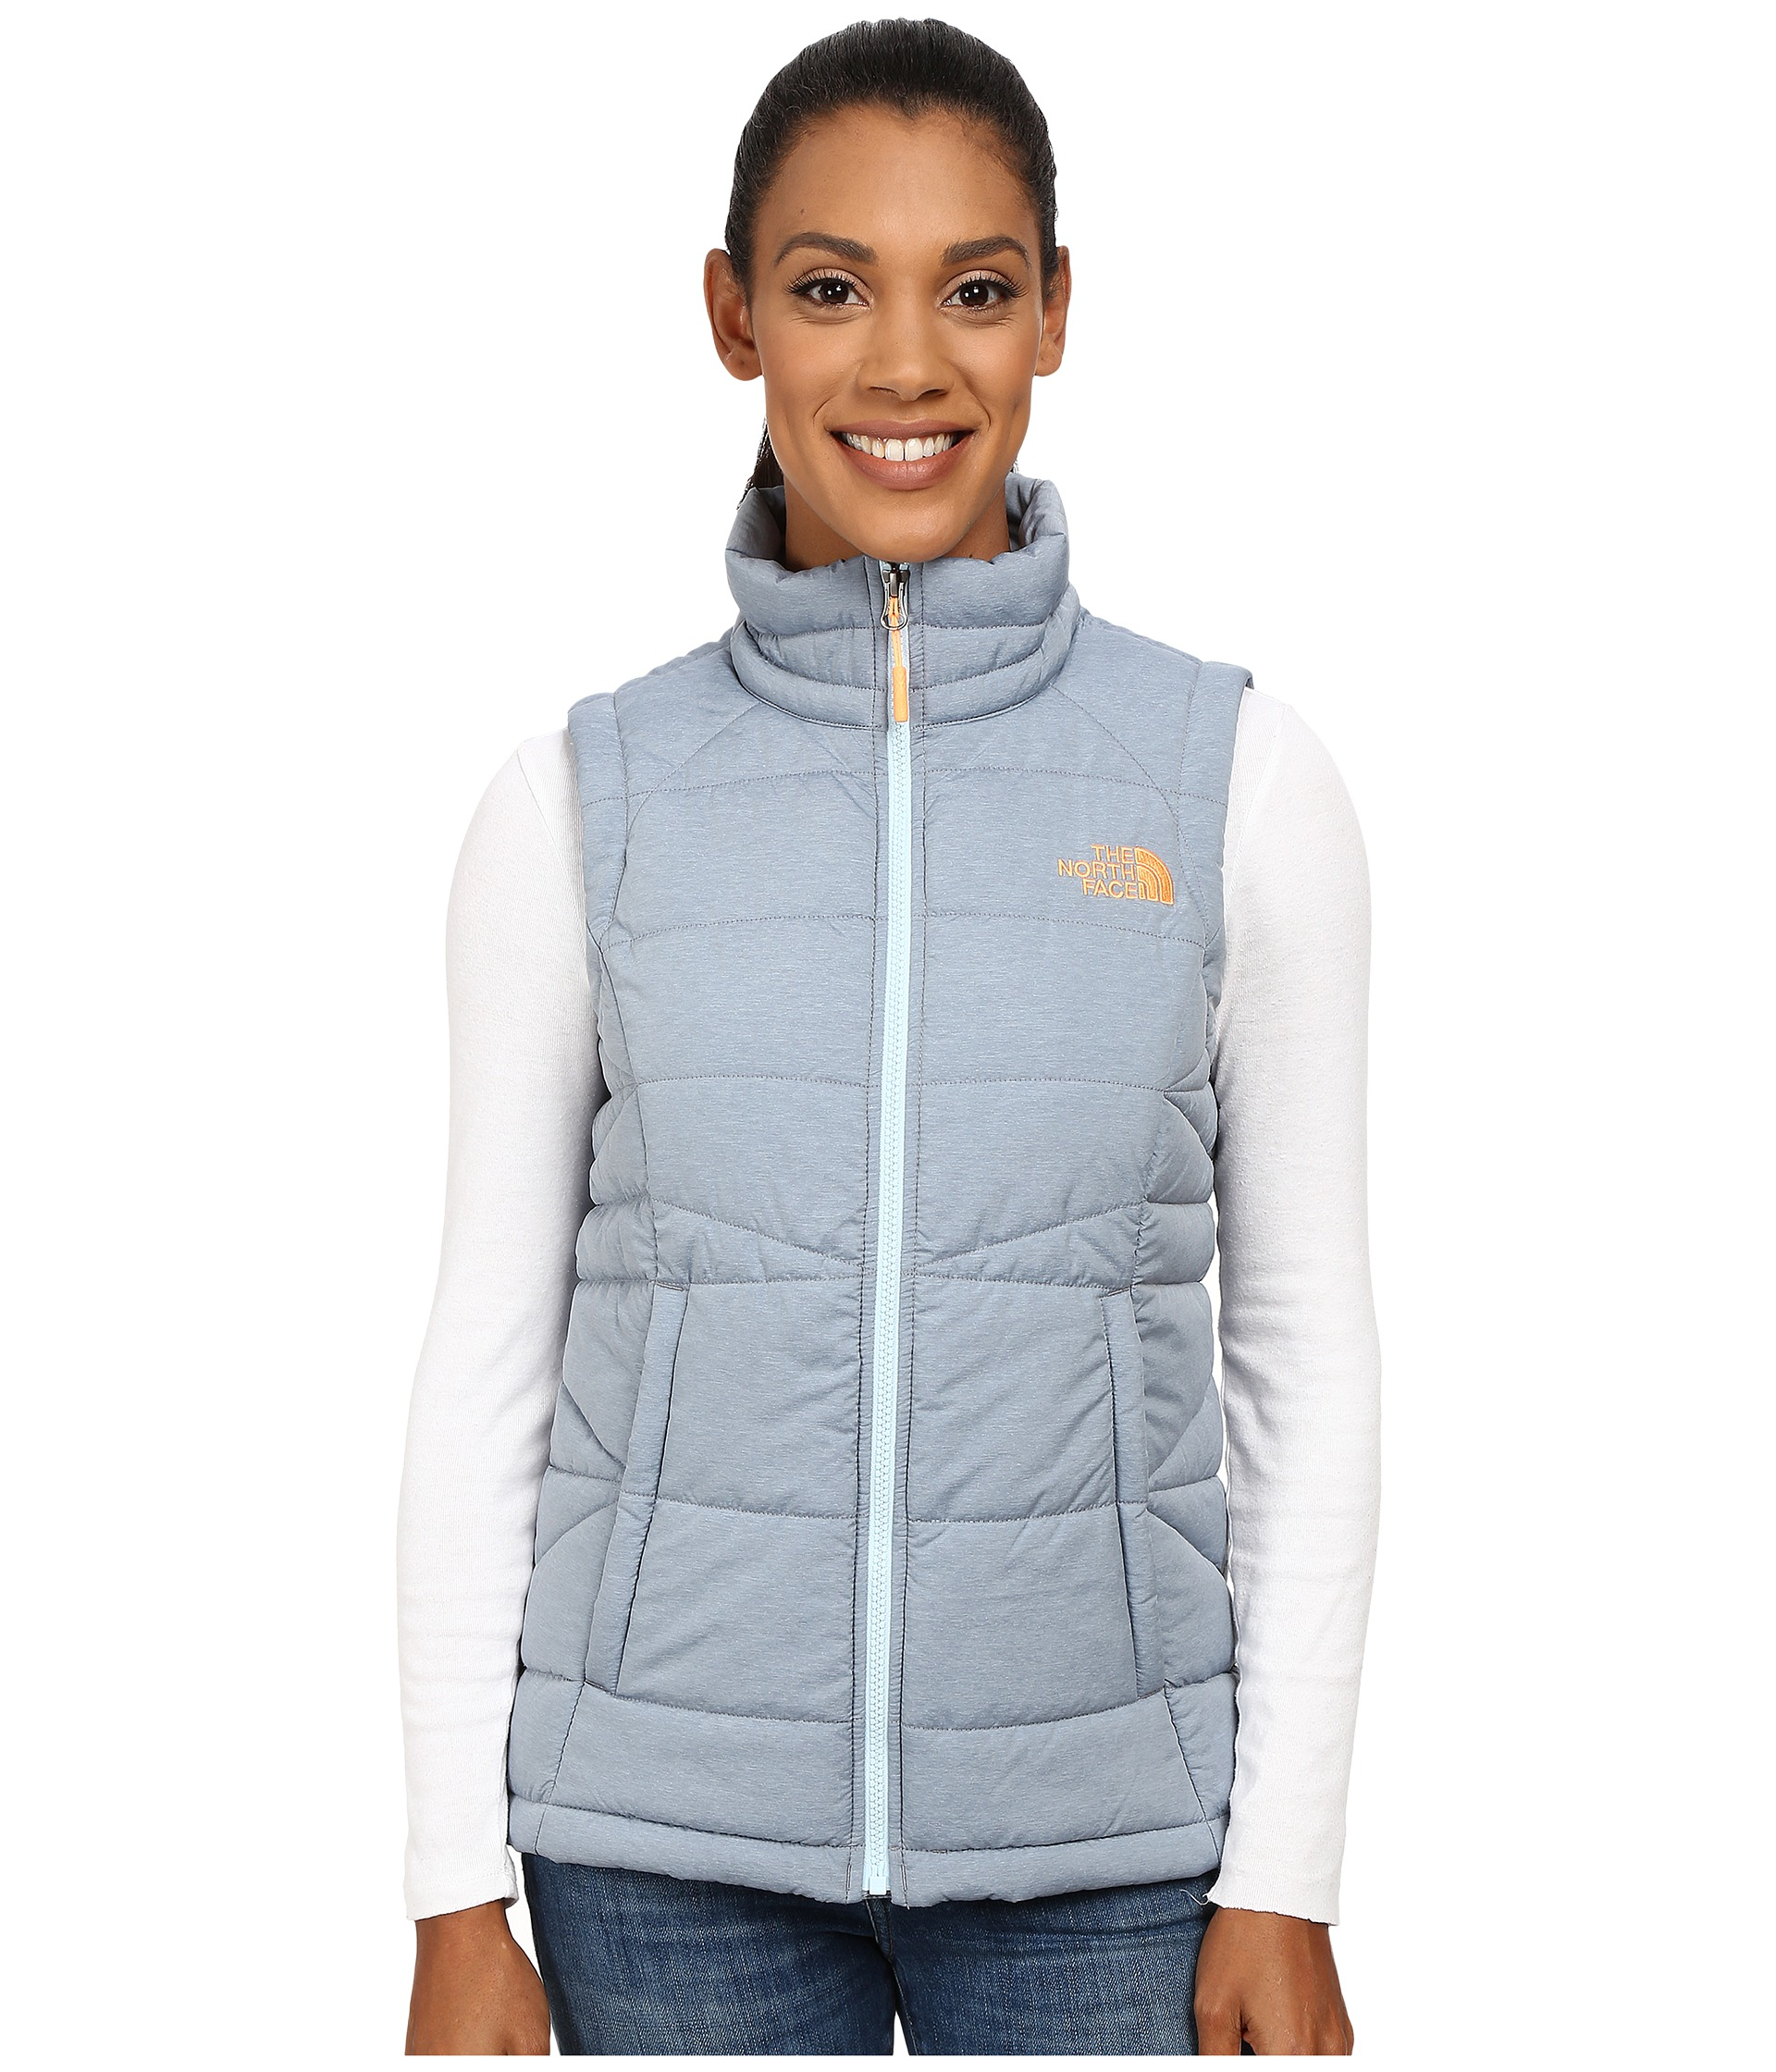 5018453269cd5 The North Face Roamer Vest in Blue - Lyst